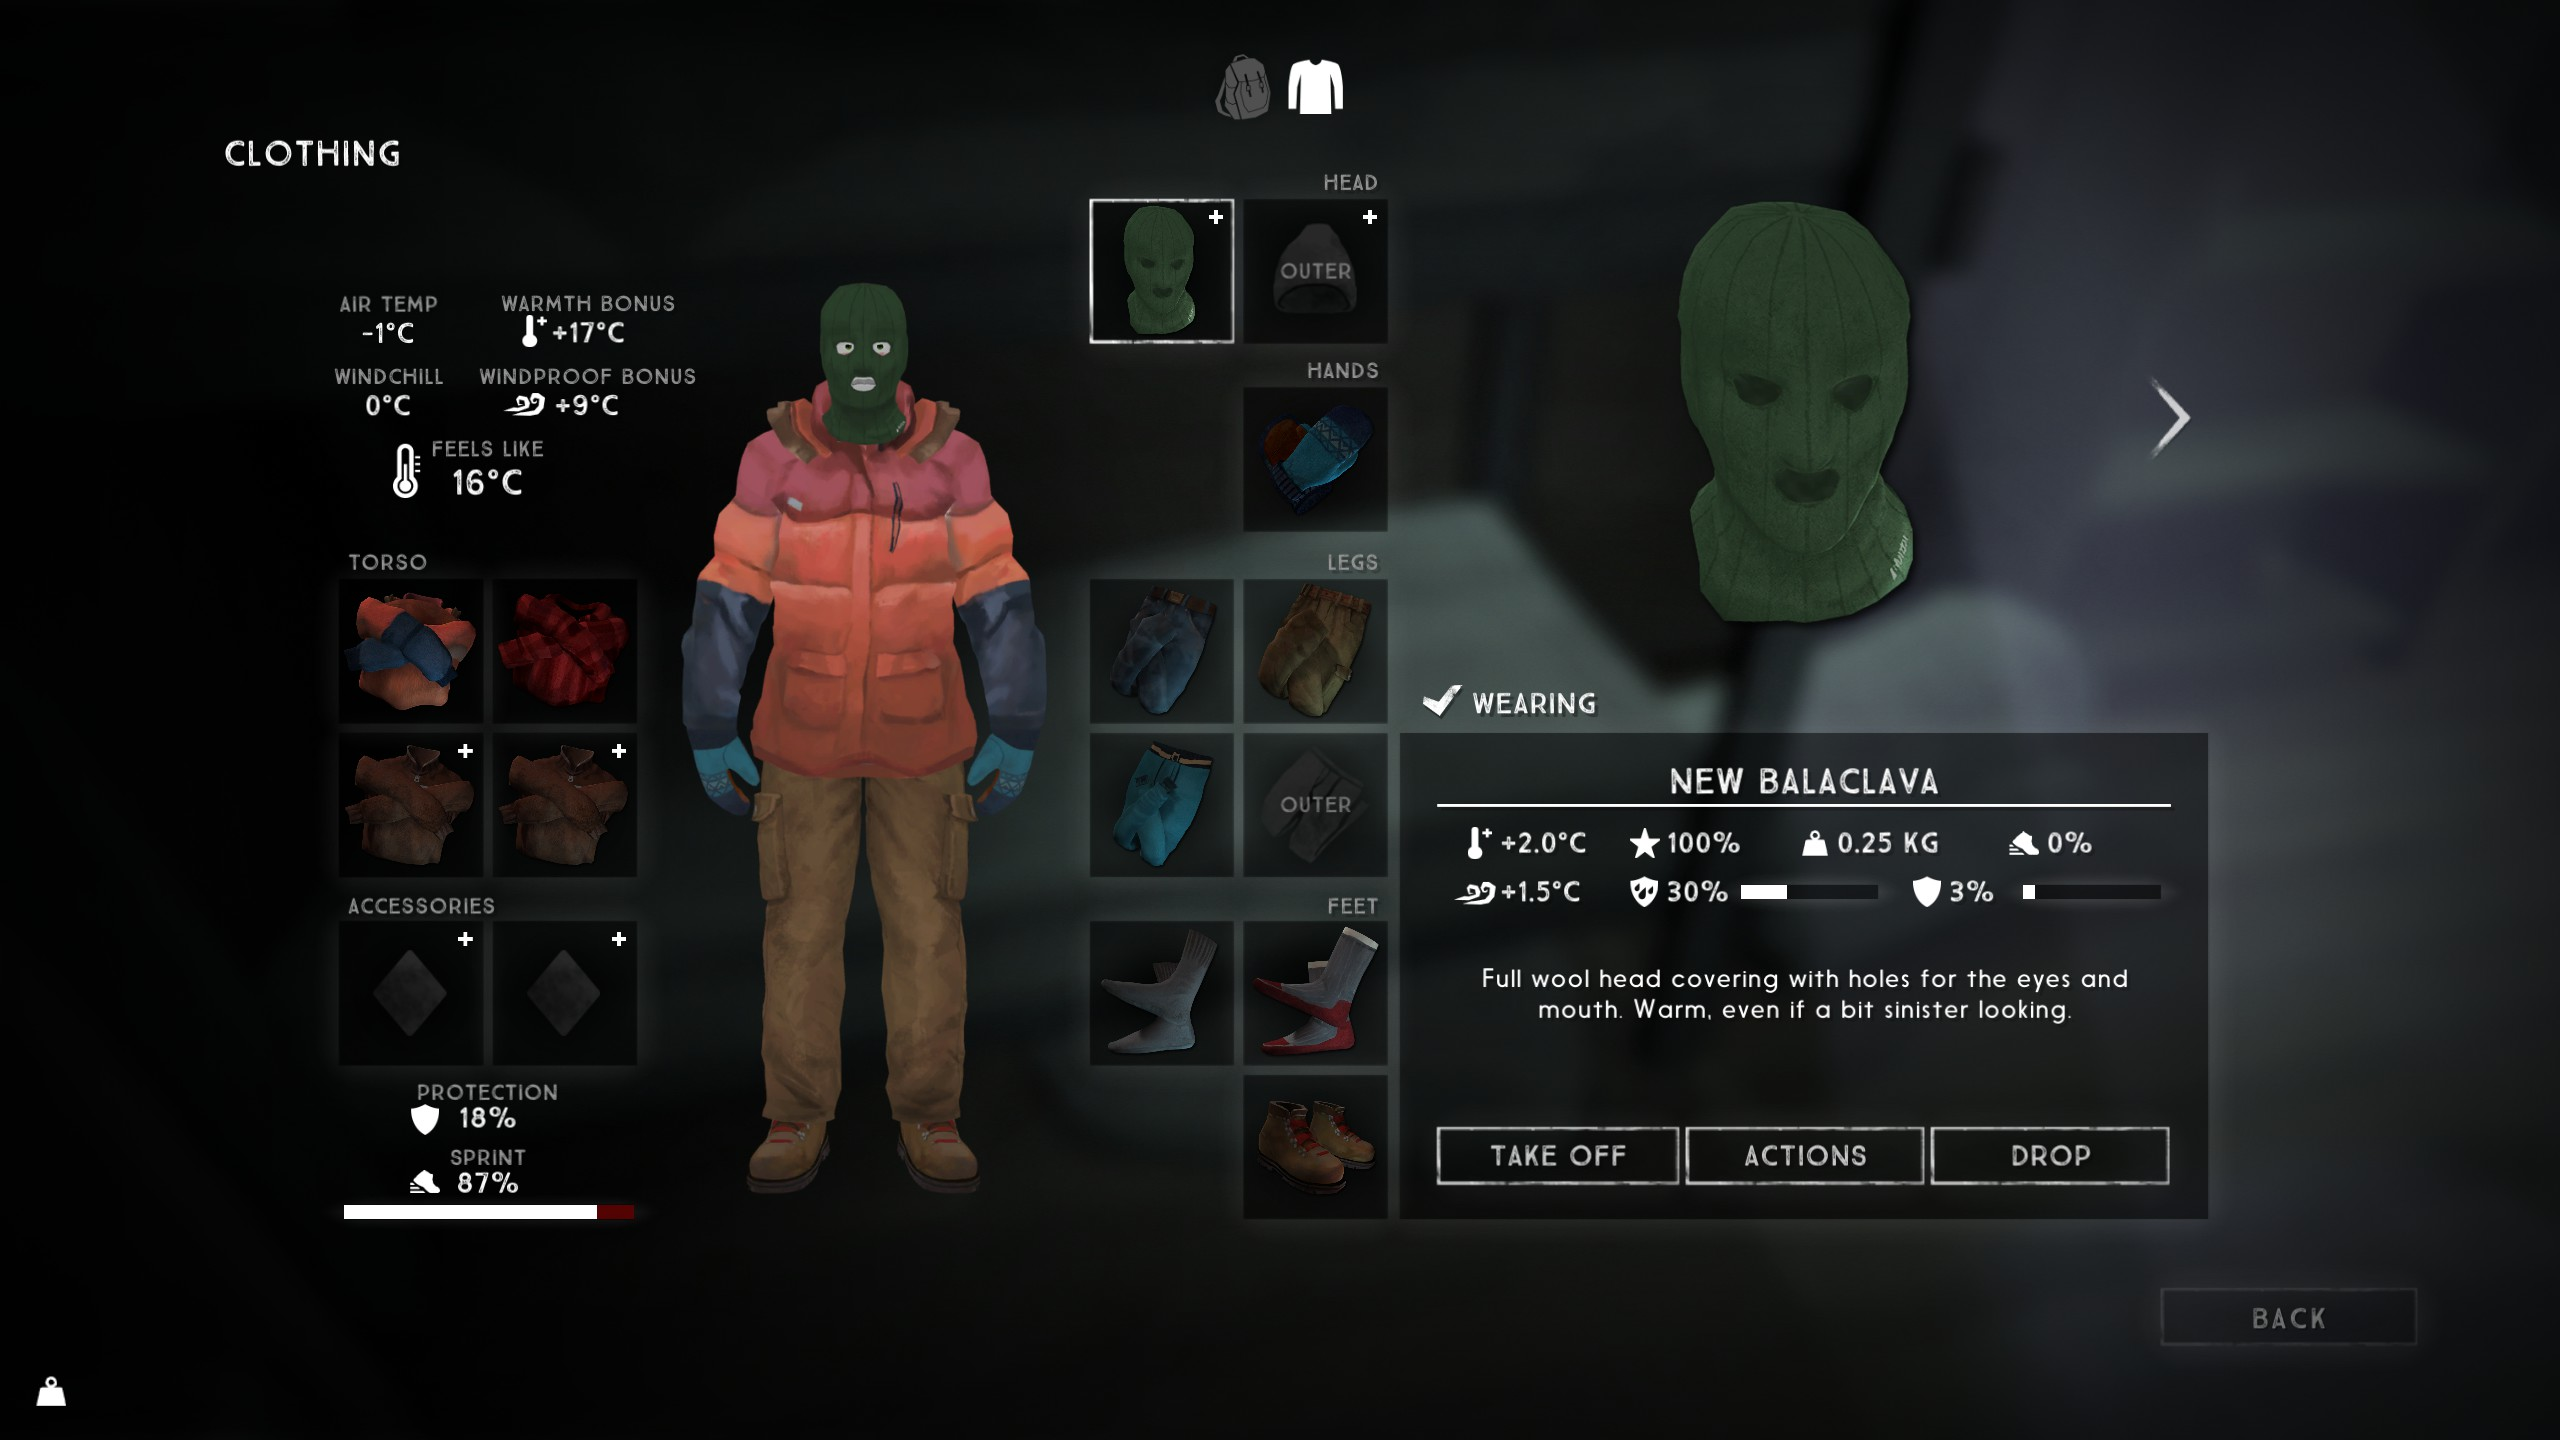 The Balaclava and Wool Toque is the meta for clothing items on your head in The Long Dark.